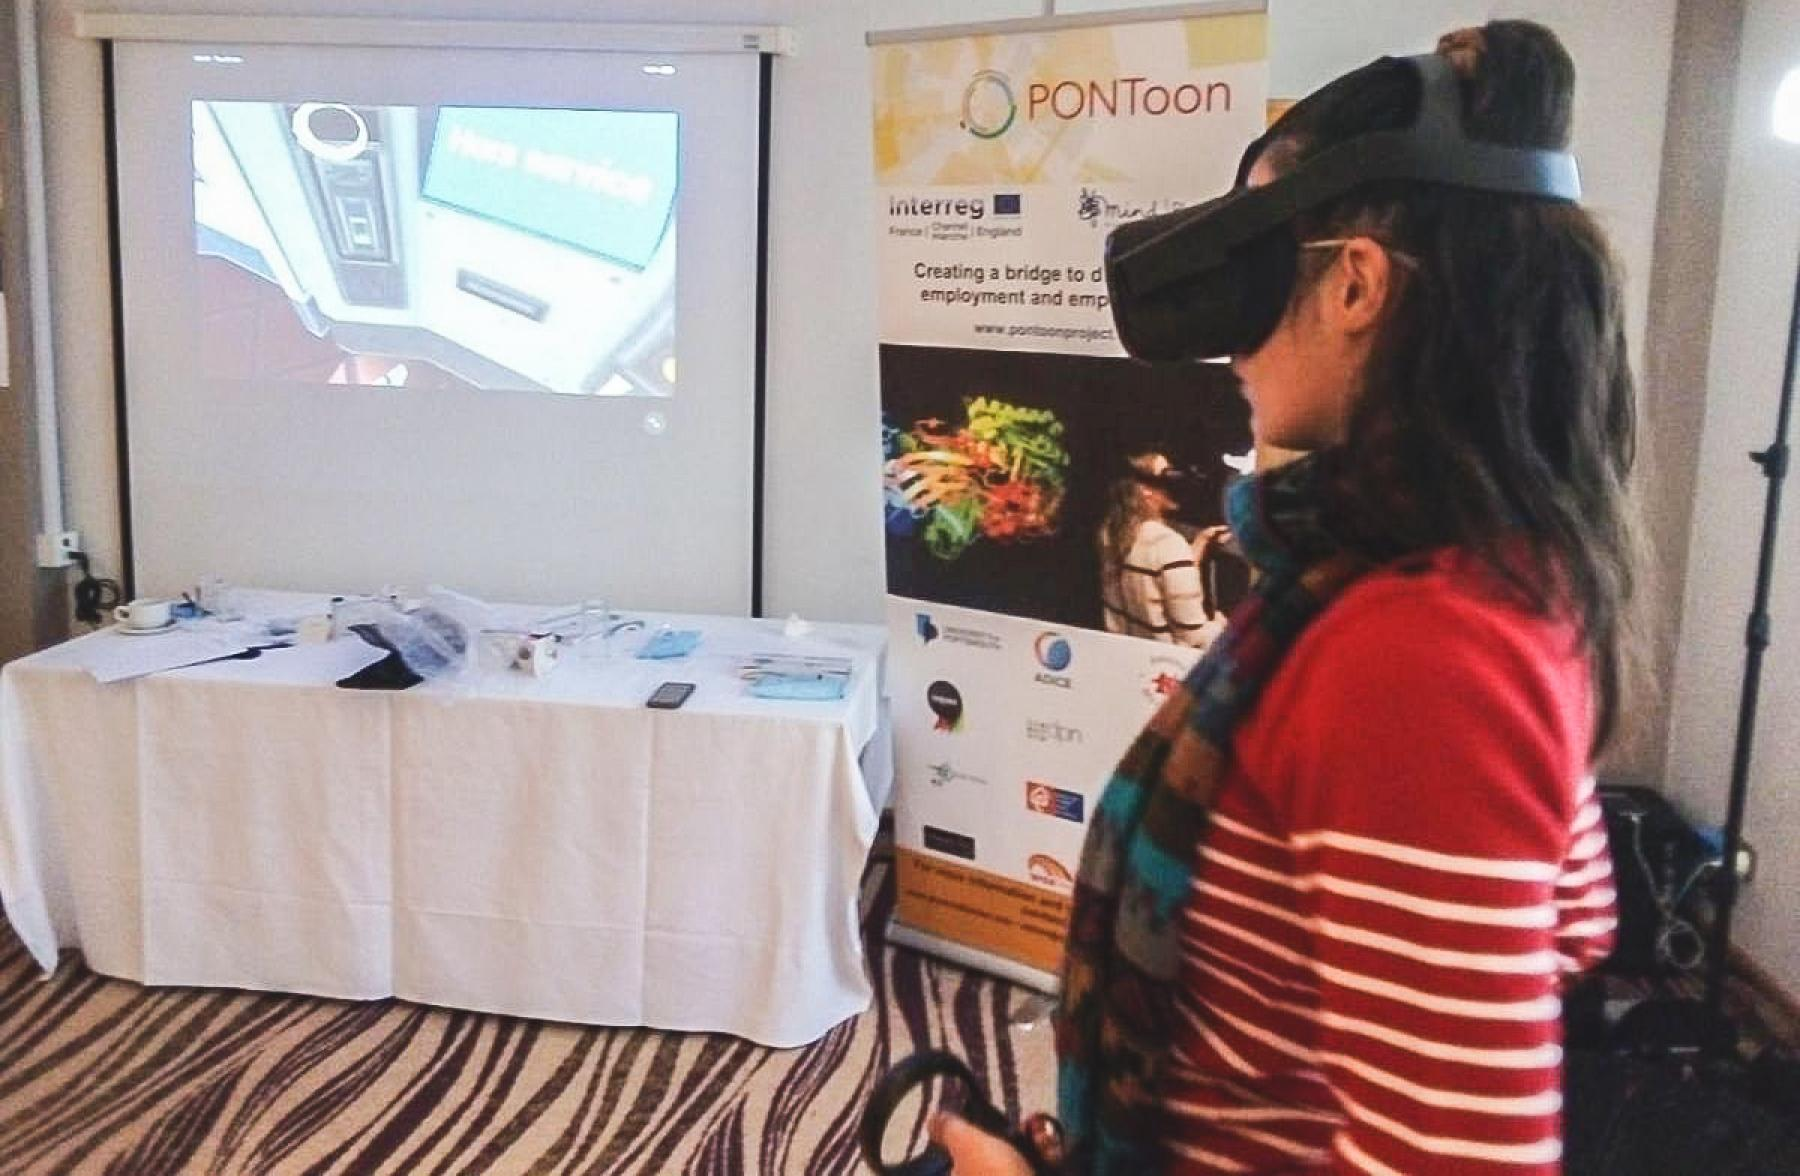 An ambassador for PONToon tries out the Virtual Reality Train Station tool